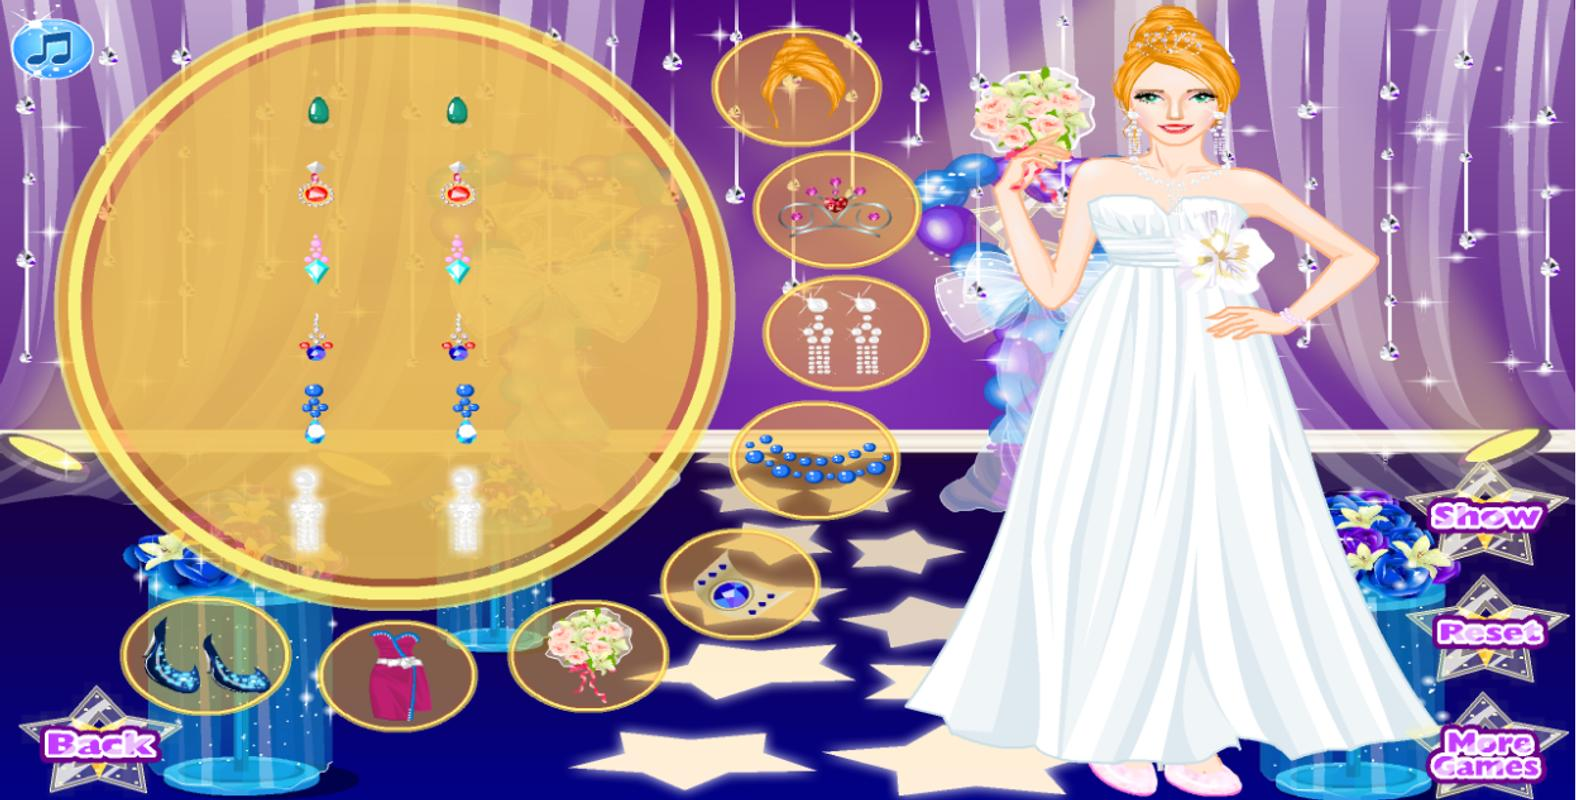 princess wedding - dress up APK Download - Free Casual GAME for ...